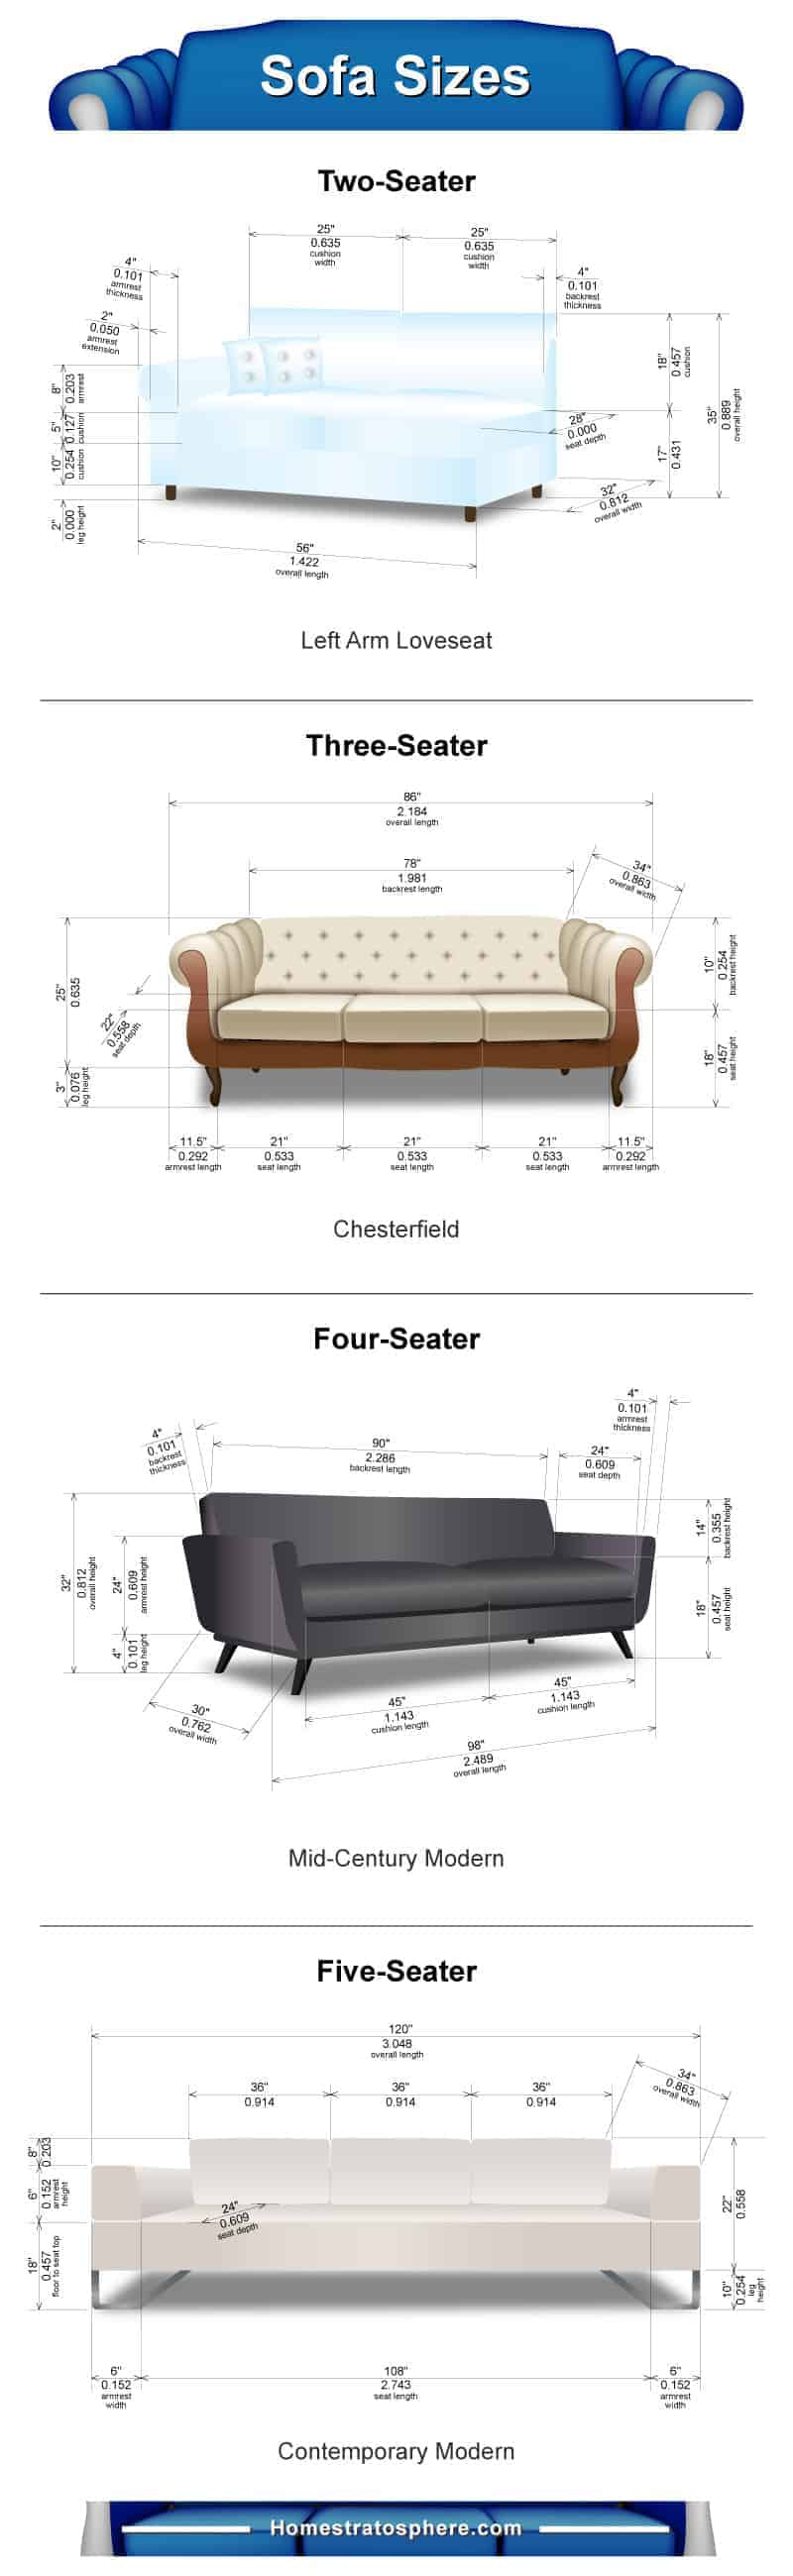 Diagrams showing the proper couch dimensions according to the number of people it seats.